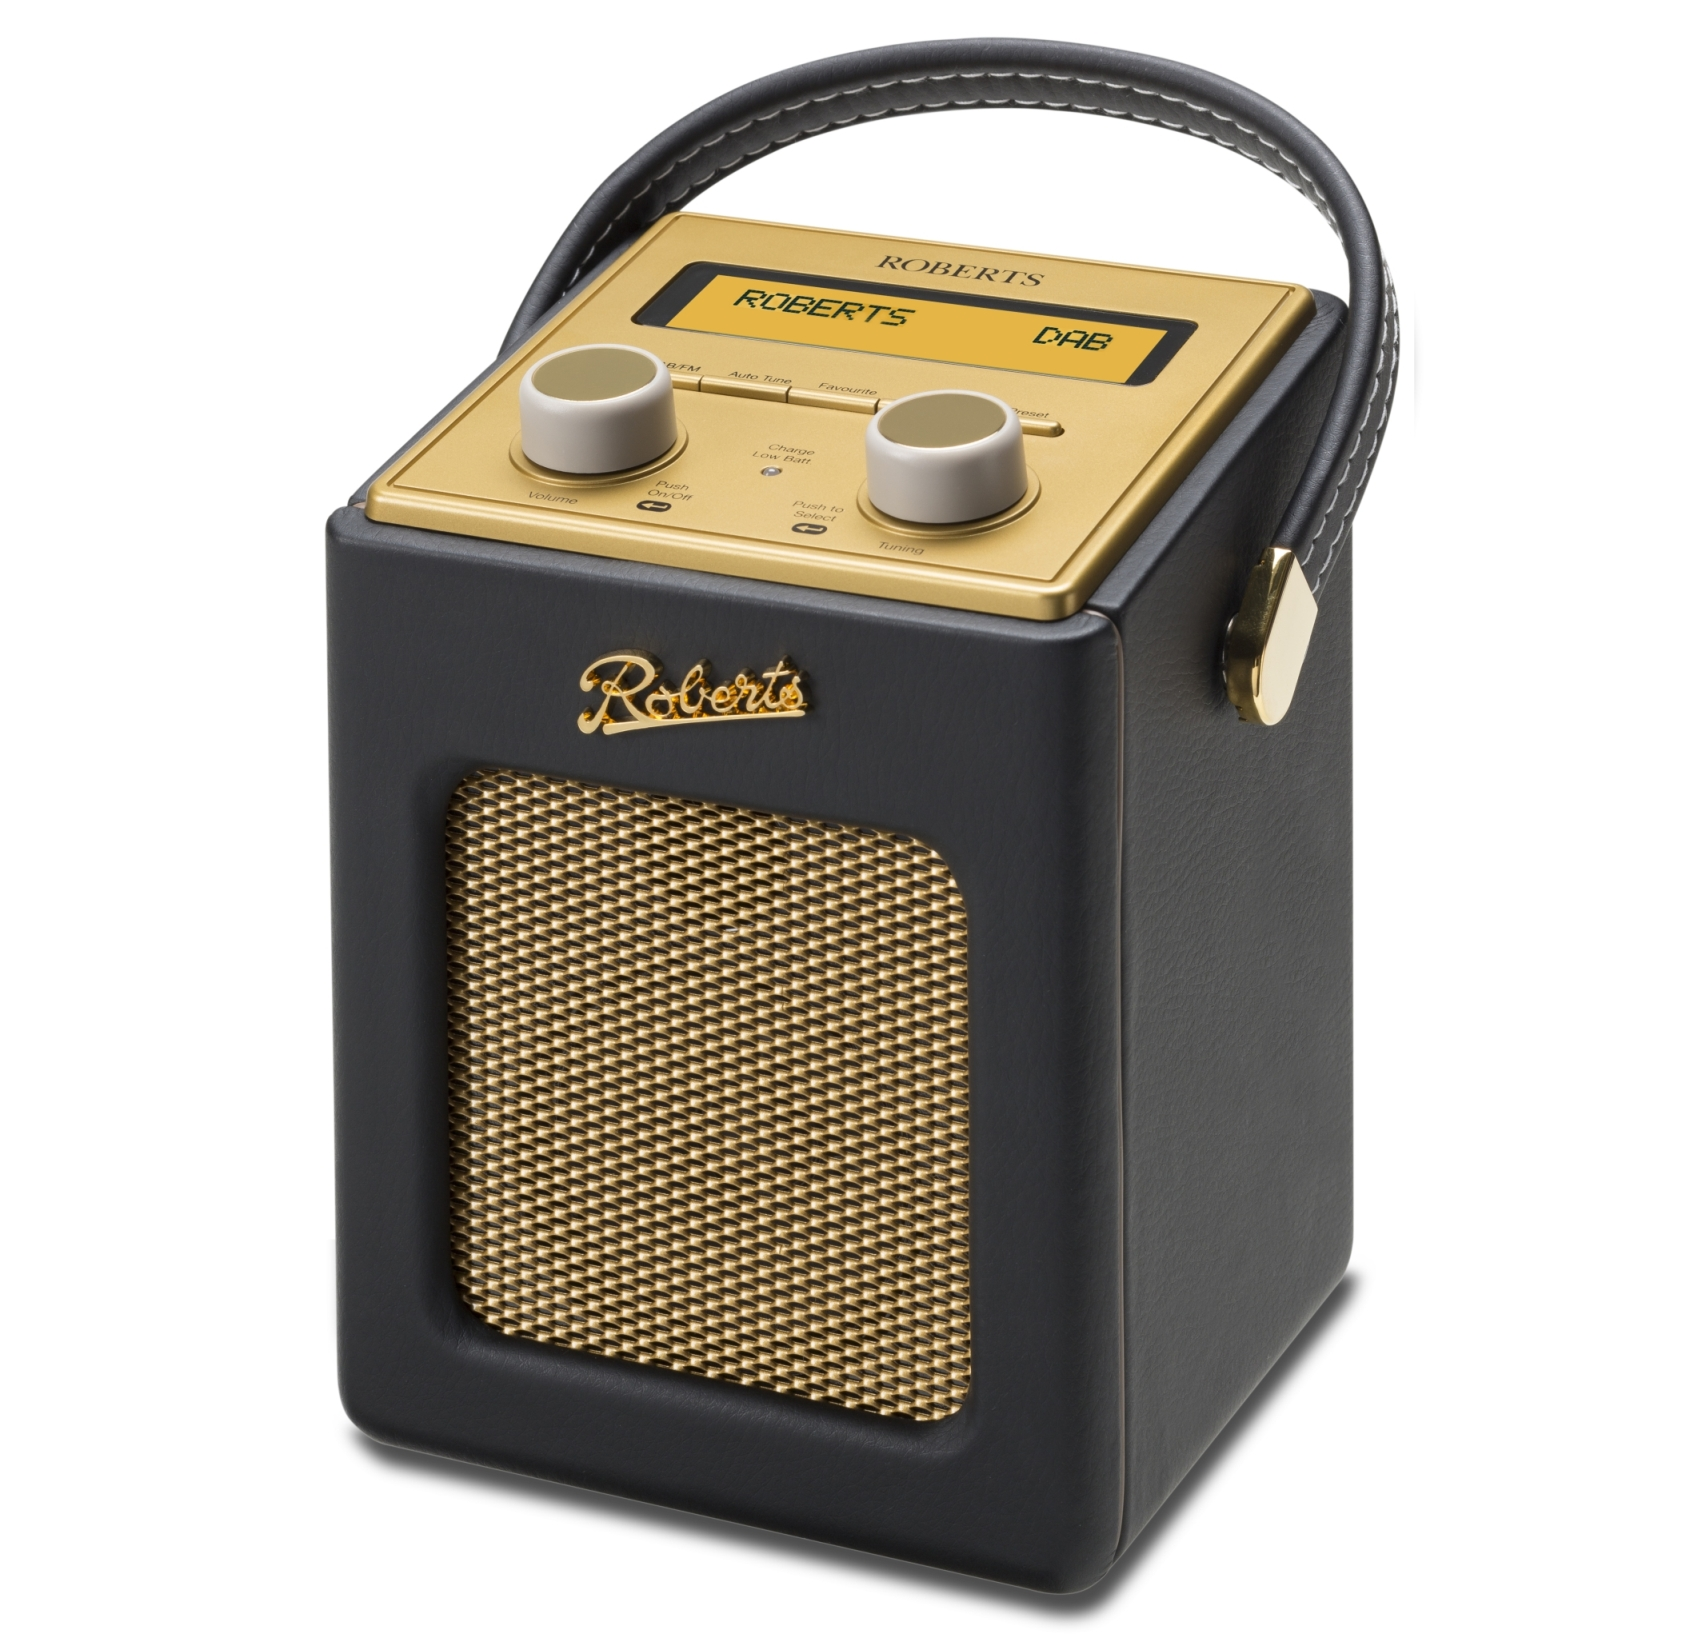 Roberts Radio Revival Mini DAB+ Radio Black (130-313003)